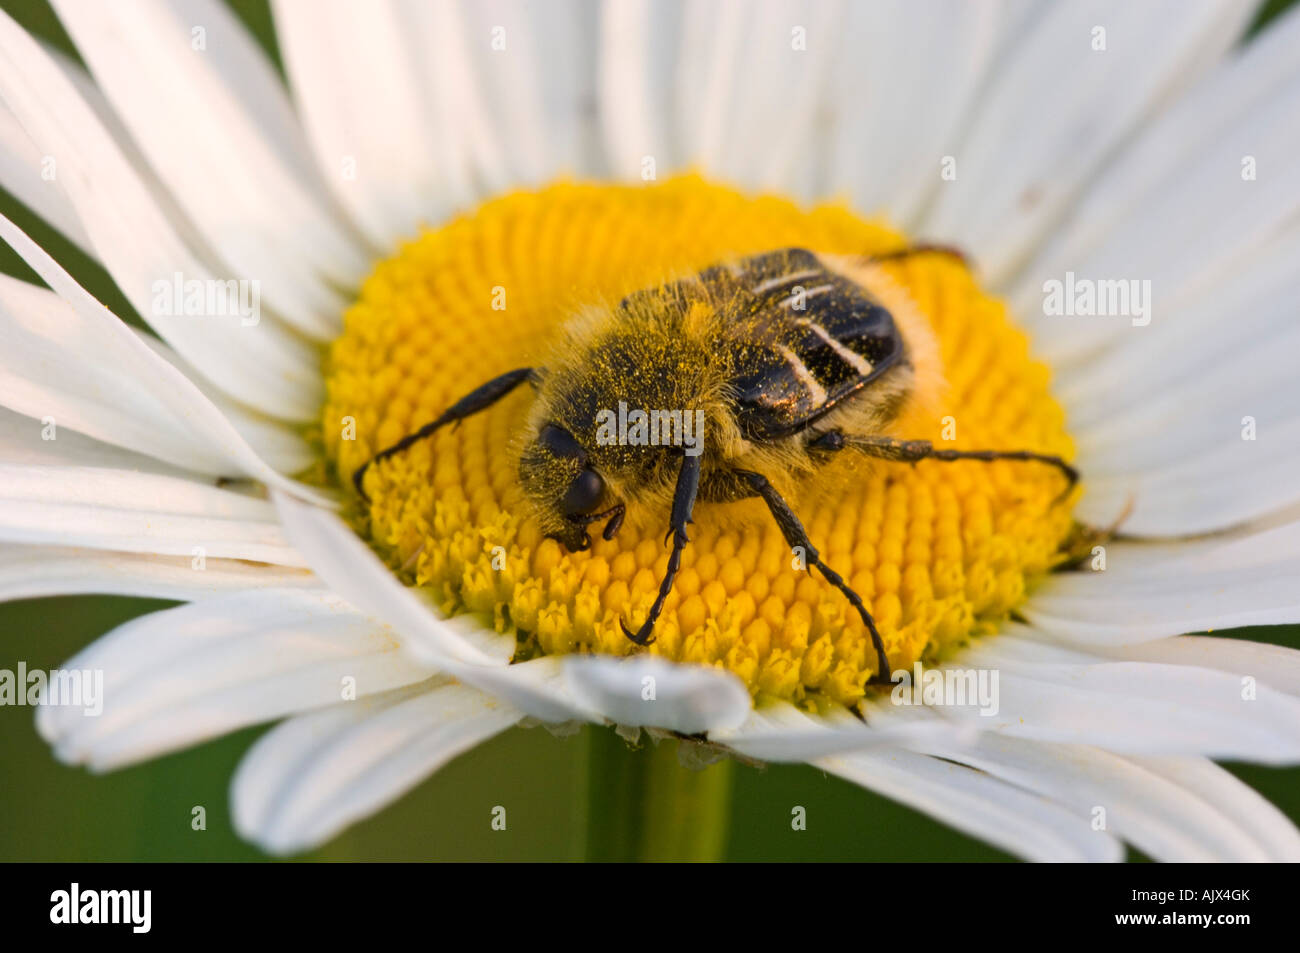 Common Daisy Flower With Pollinating Beetle Hairy Flower